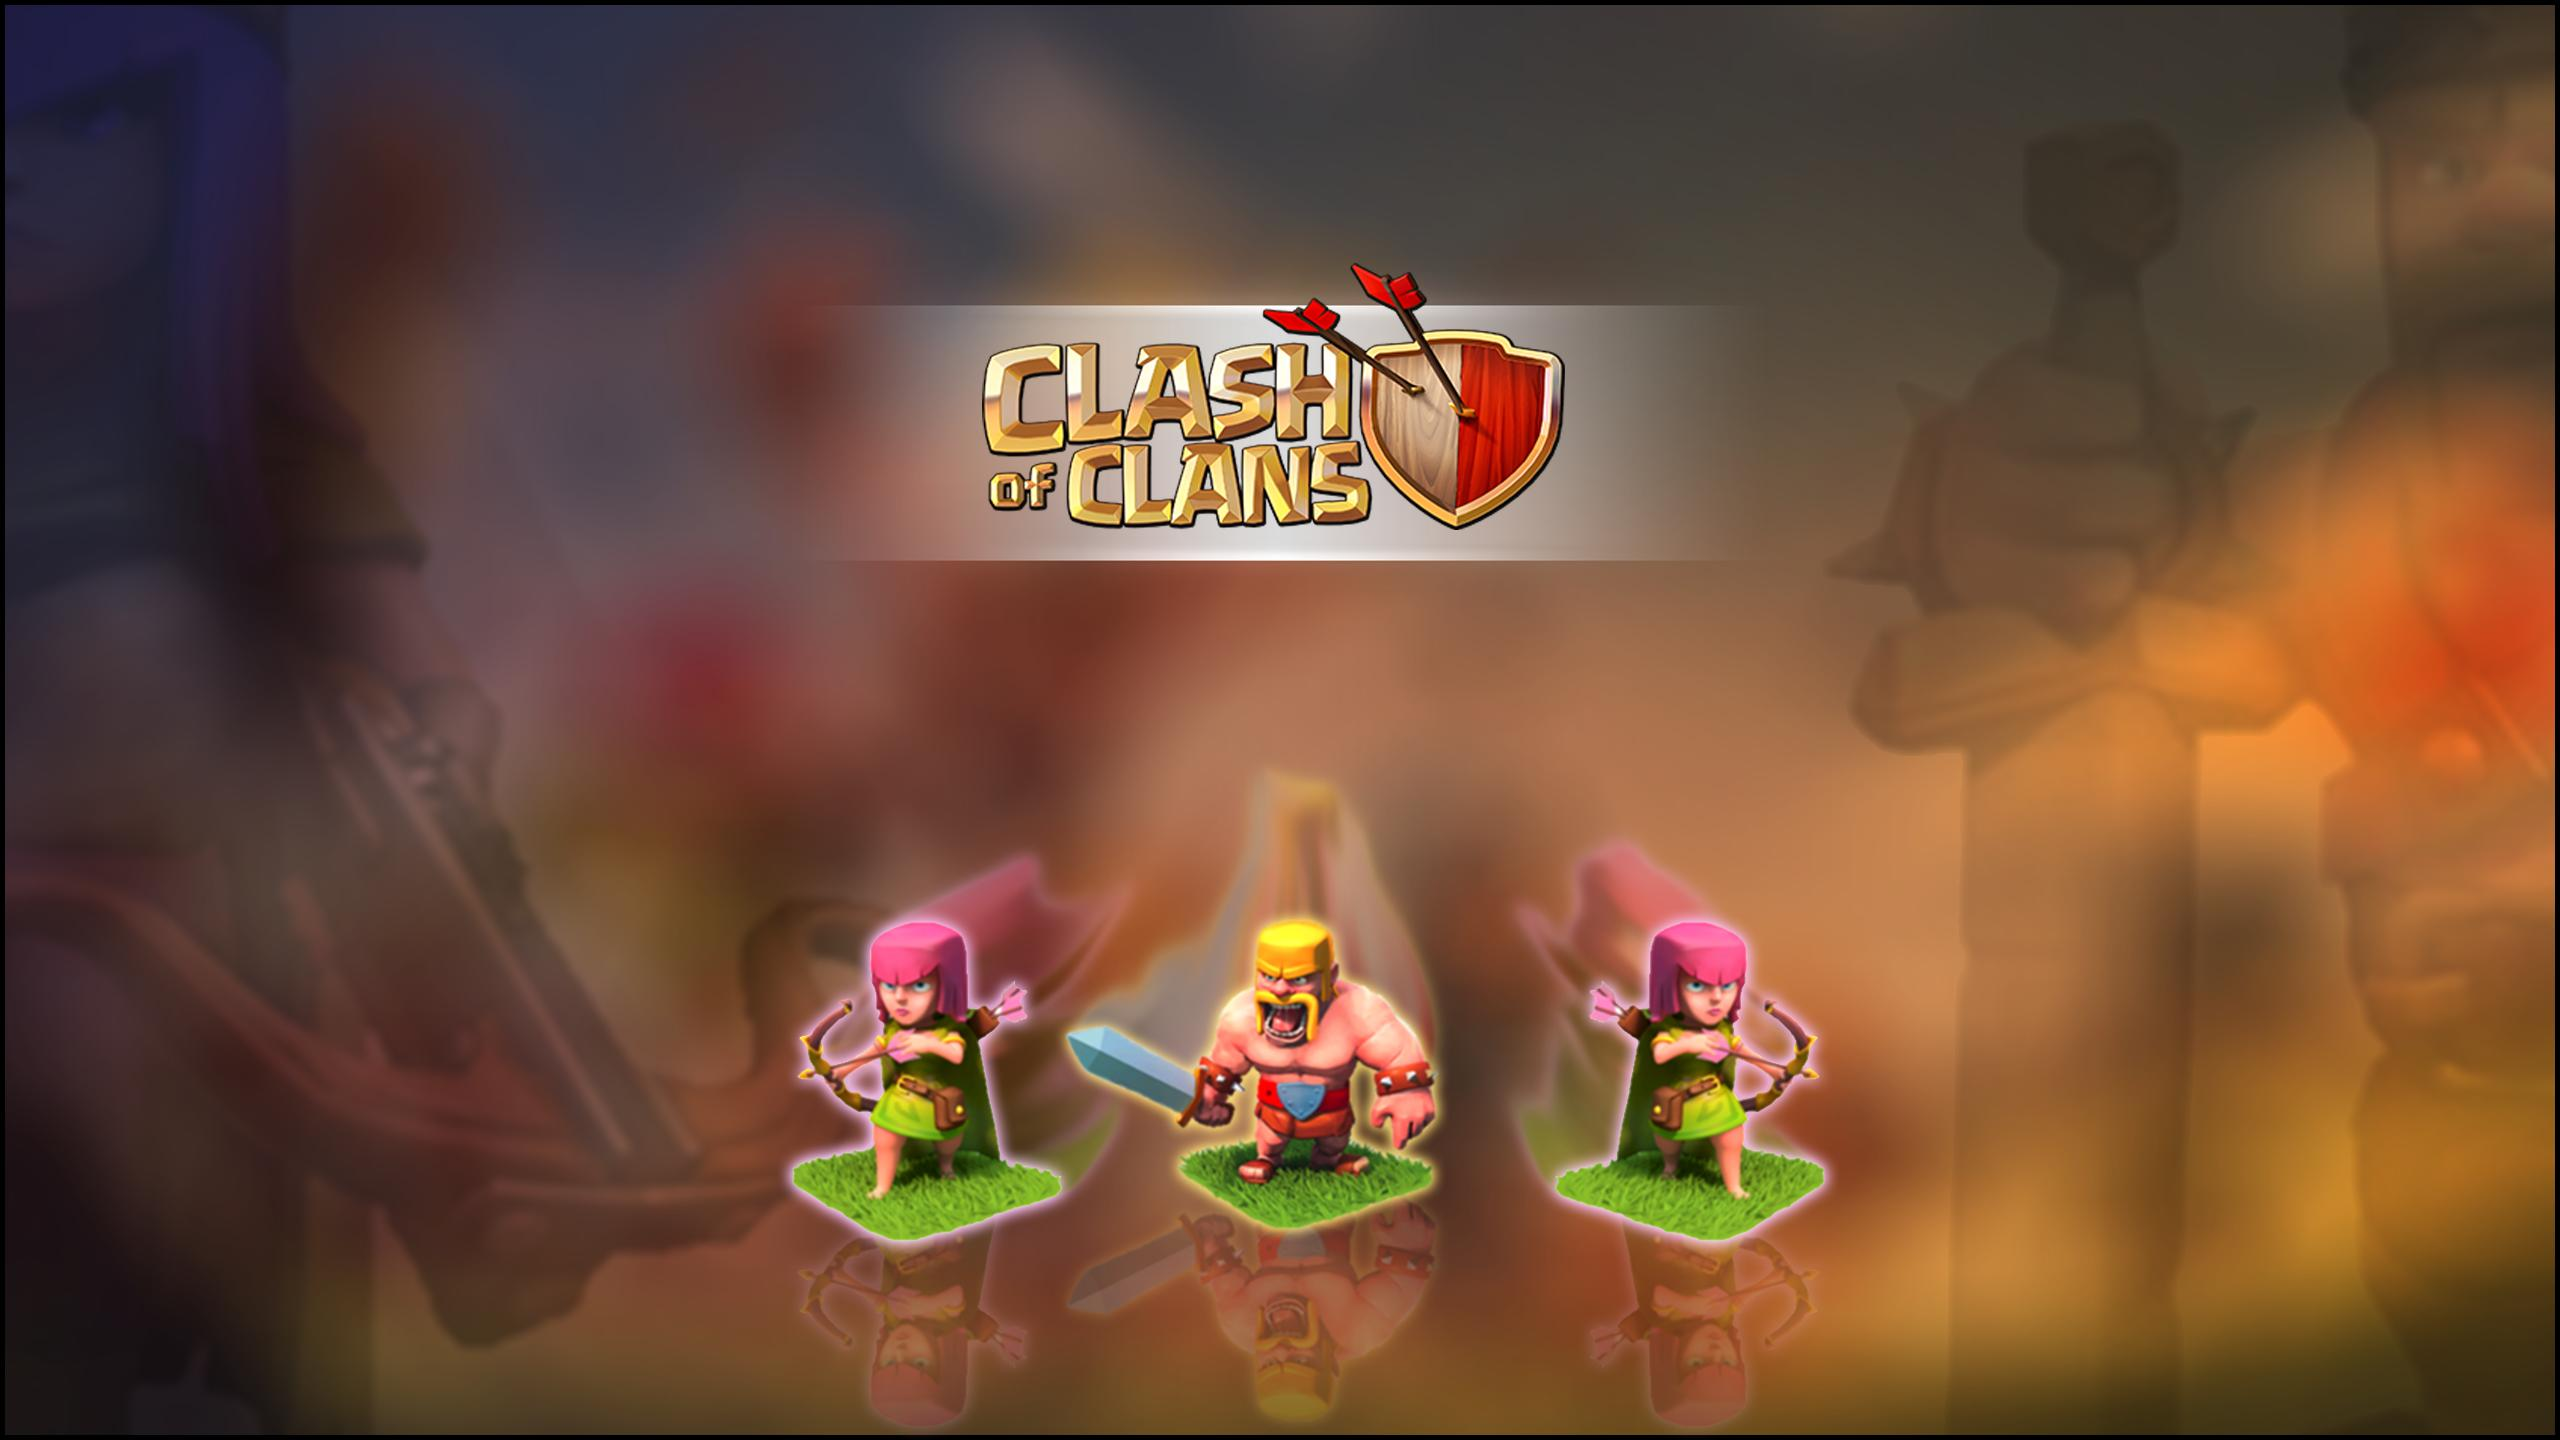 Clash Of Clans Hd Wallpaper Clash Of Clans Background